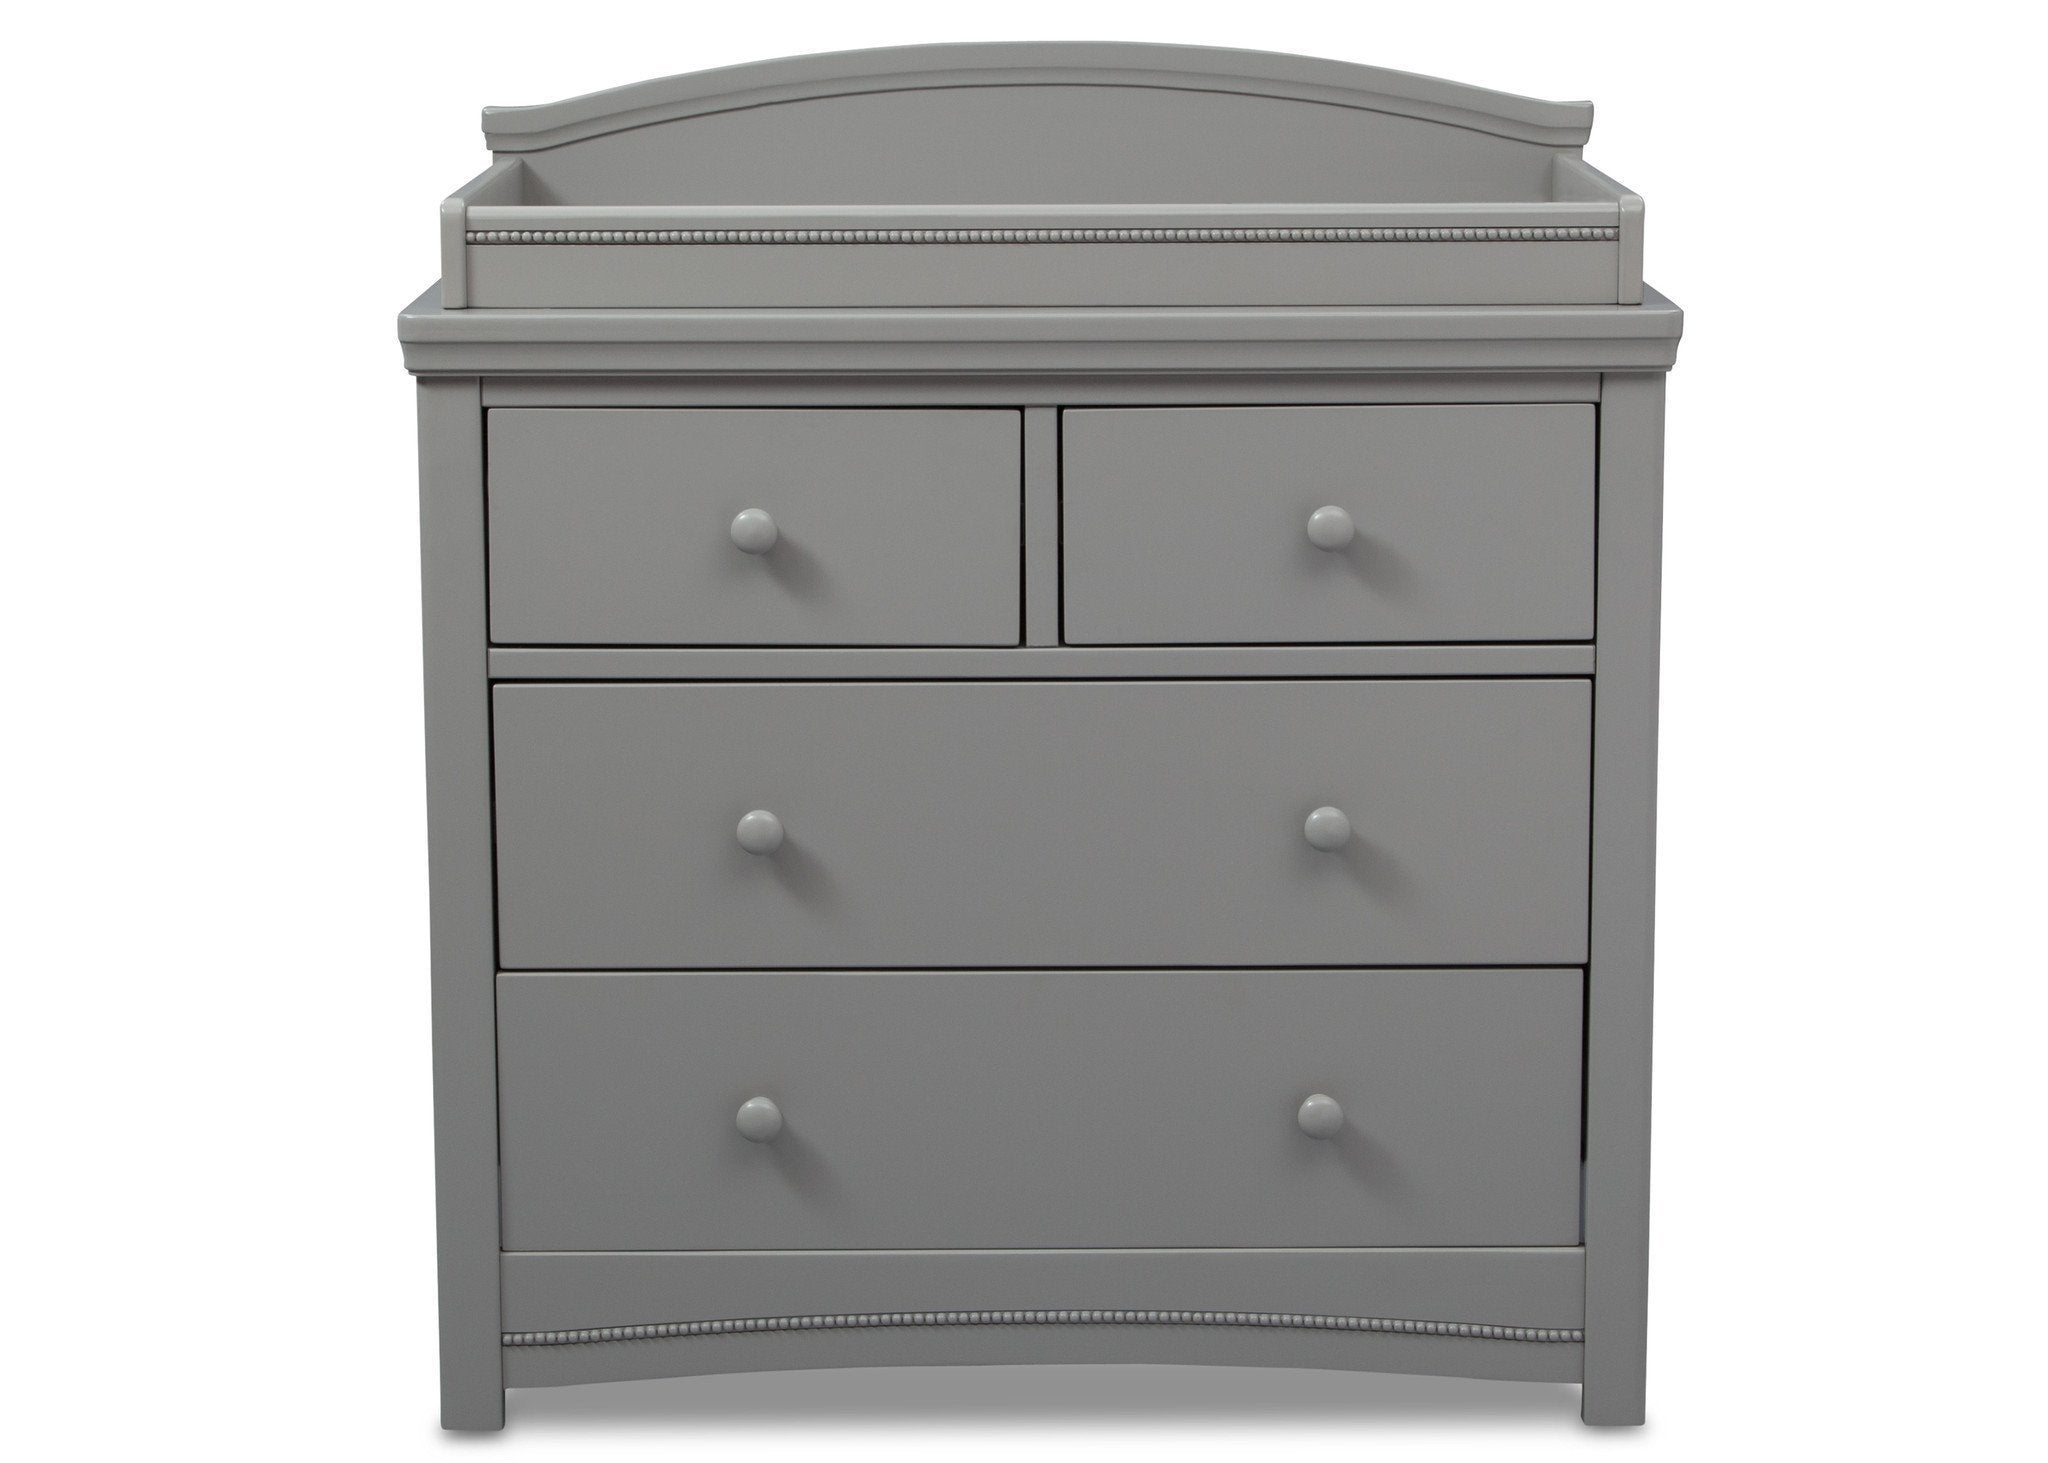 Simmons Kids Grey (026) Emma 4 Drawer Dresser with Changing Top Front Facing View